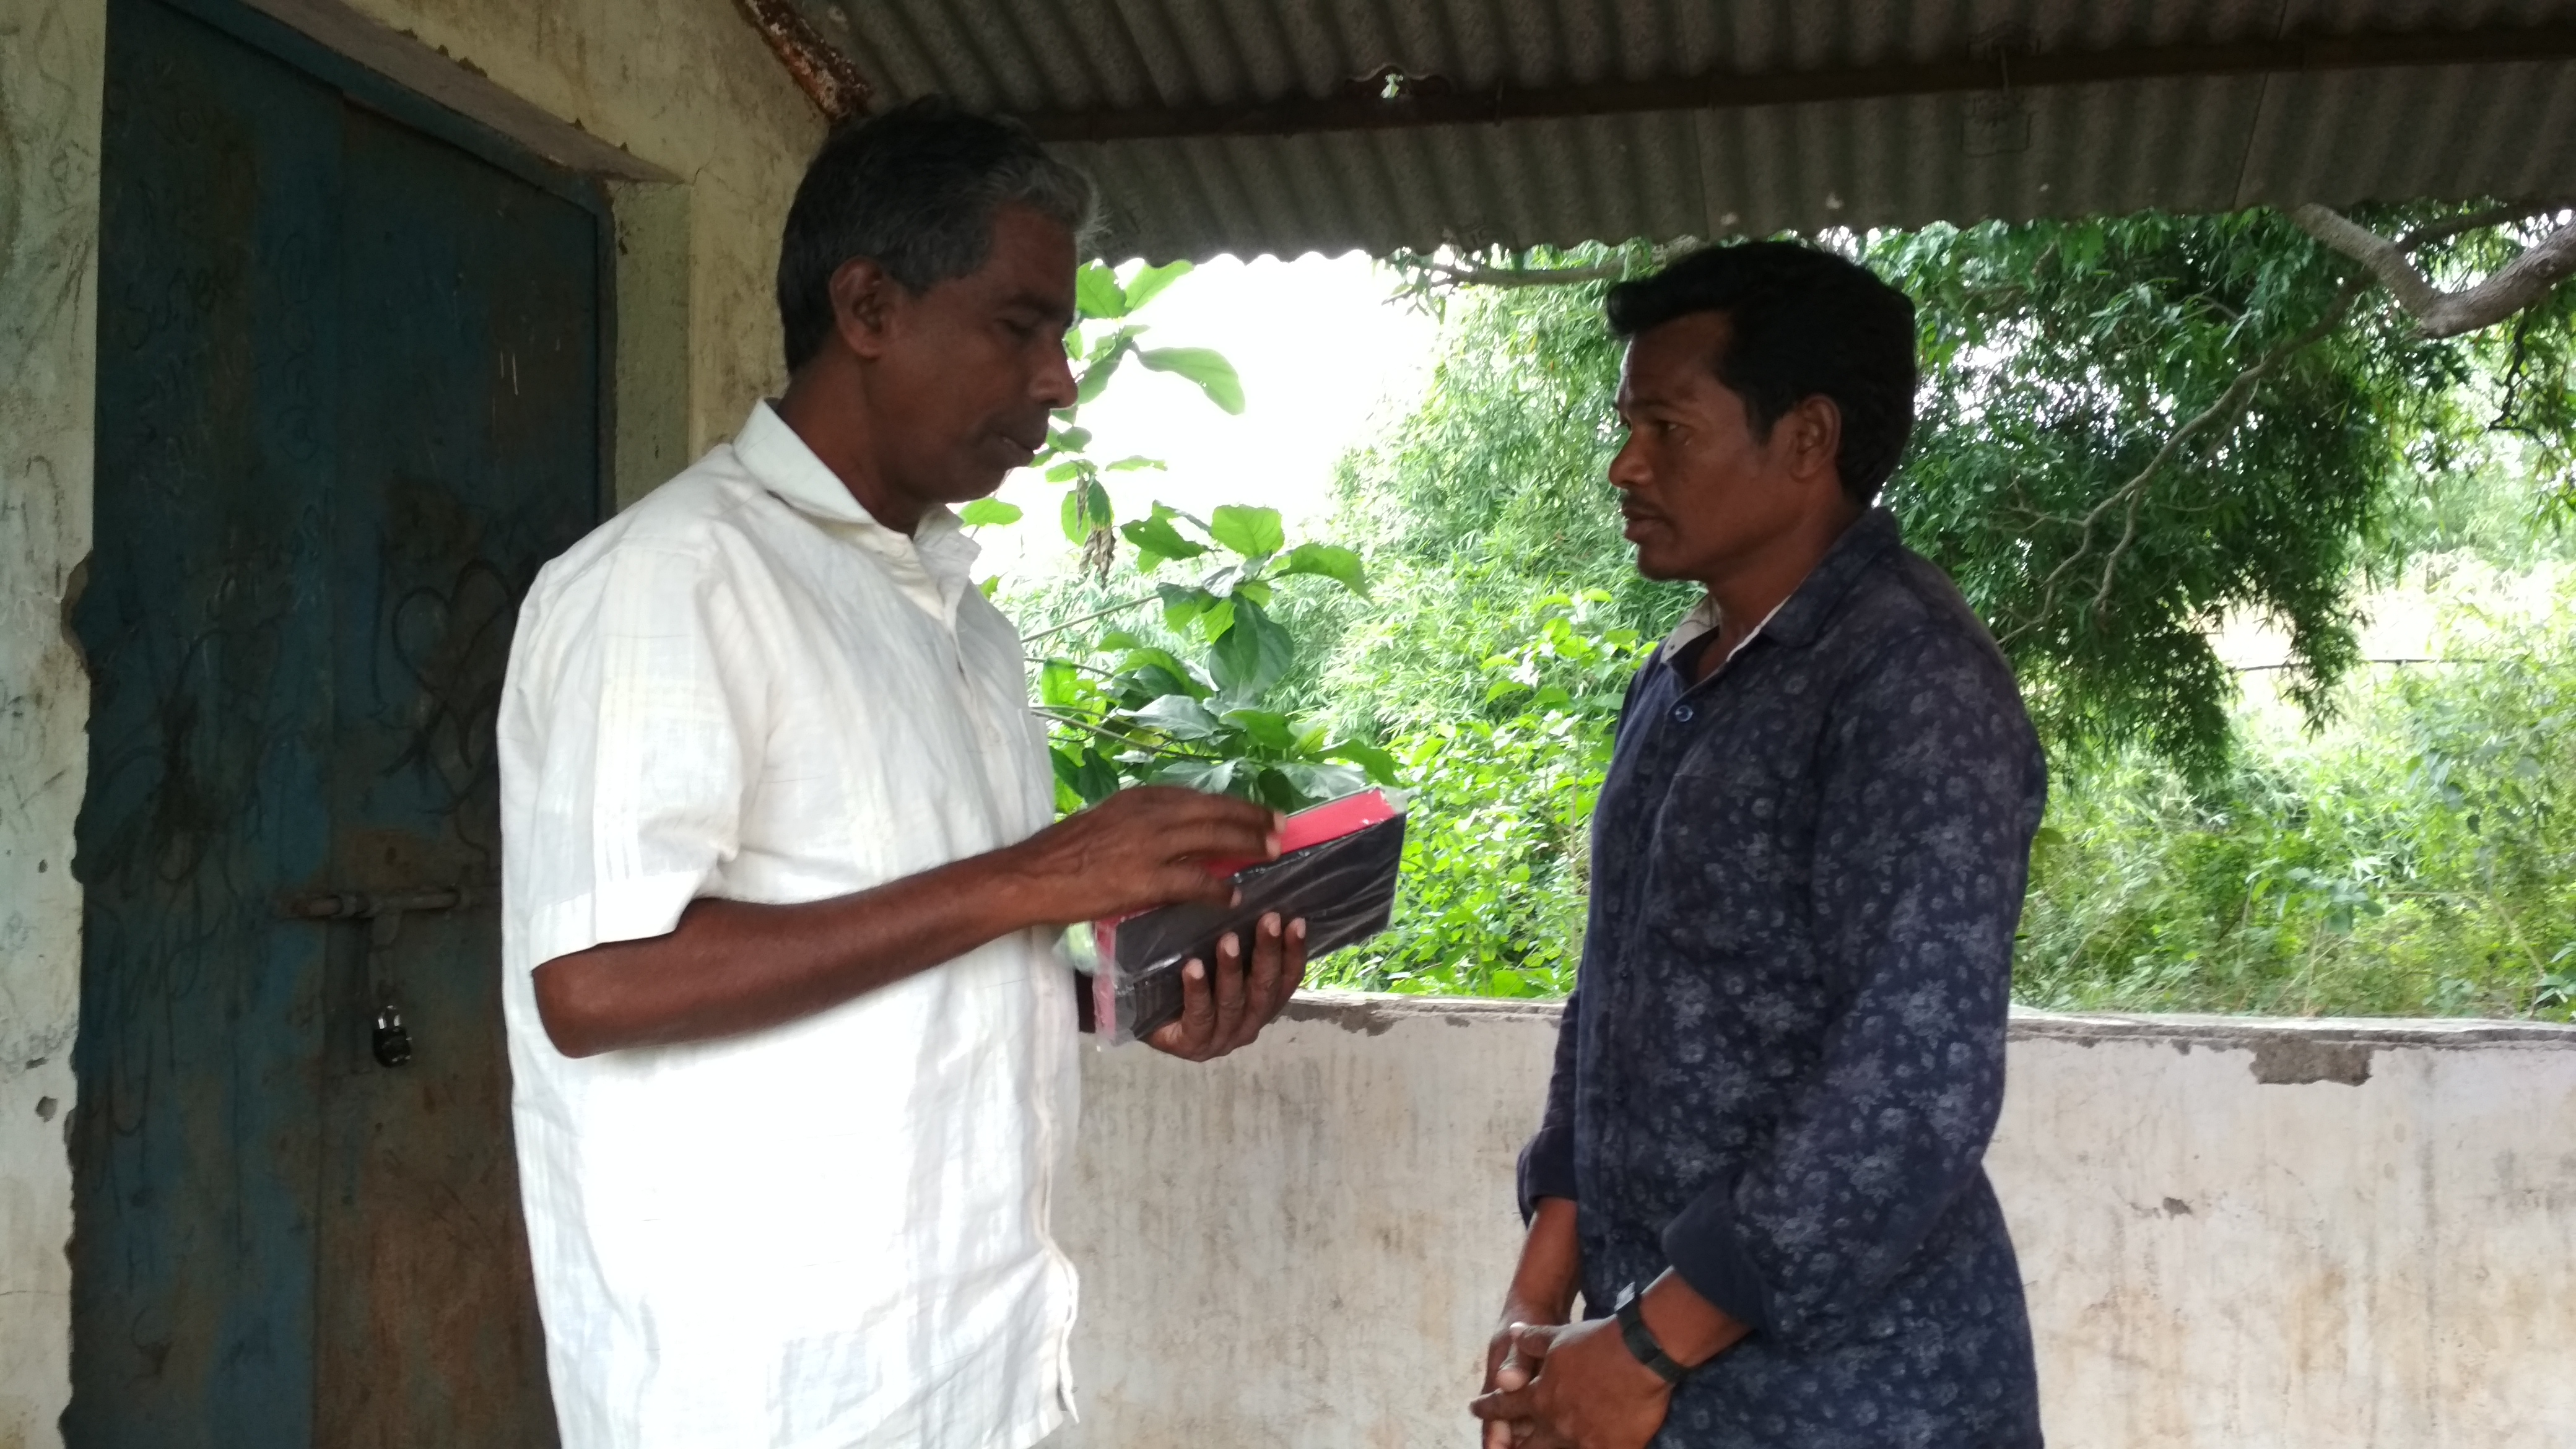 Lachhana receives Bible from Hanok Karad